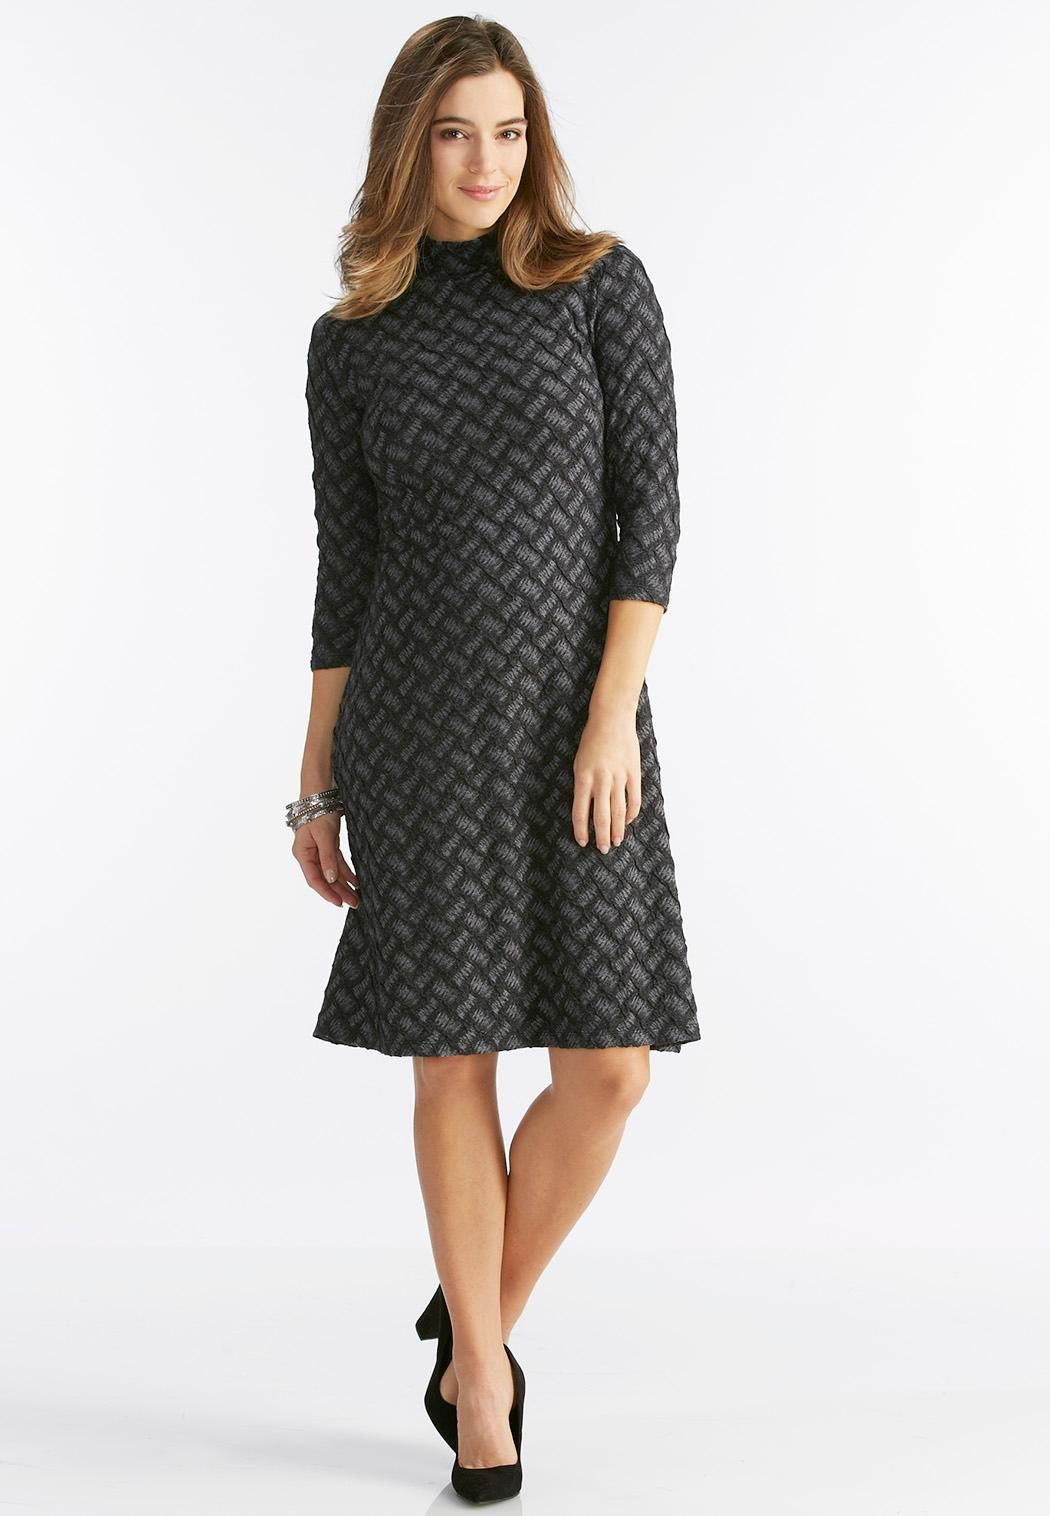 24fc835b2f318 Start the season off right in this chic knit dress, featuring a textured  checkered design, trendy mock neckline and flattering fit and flare  silhouette.